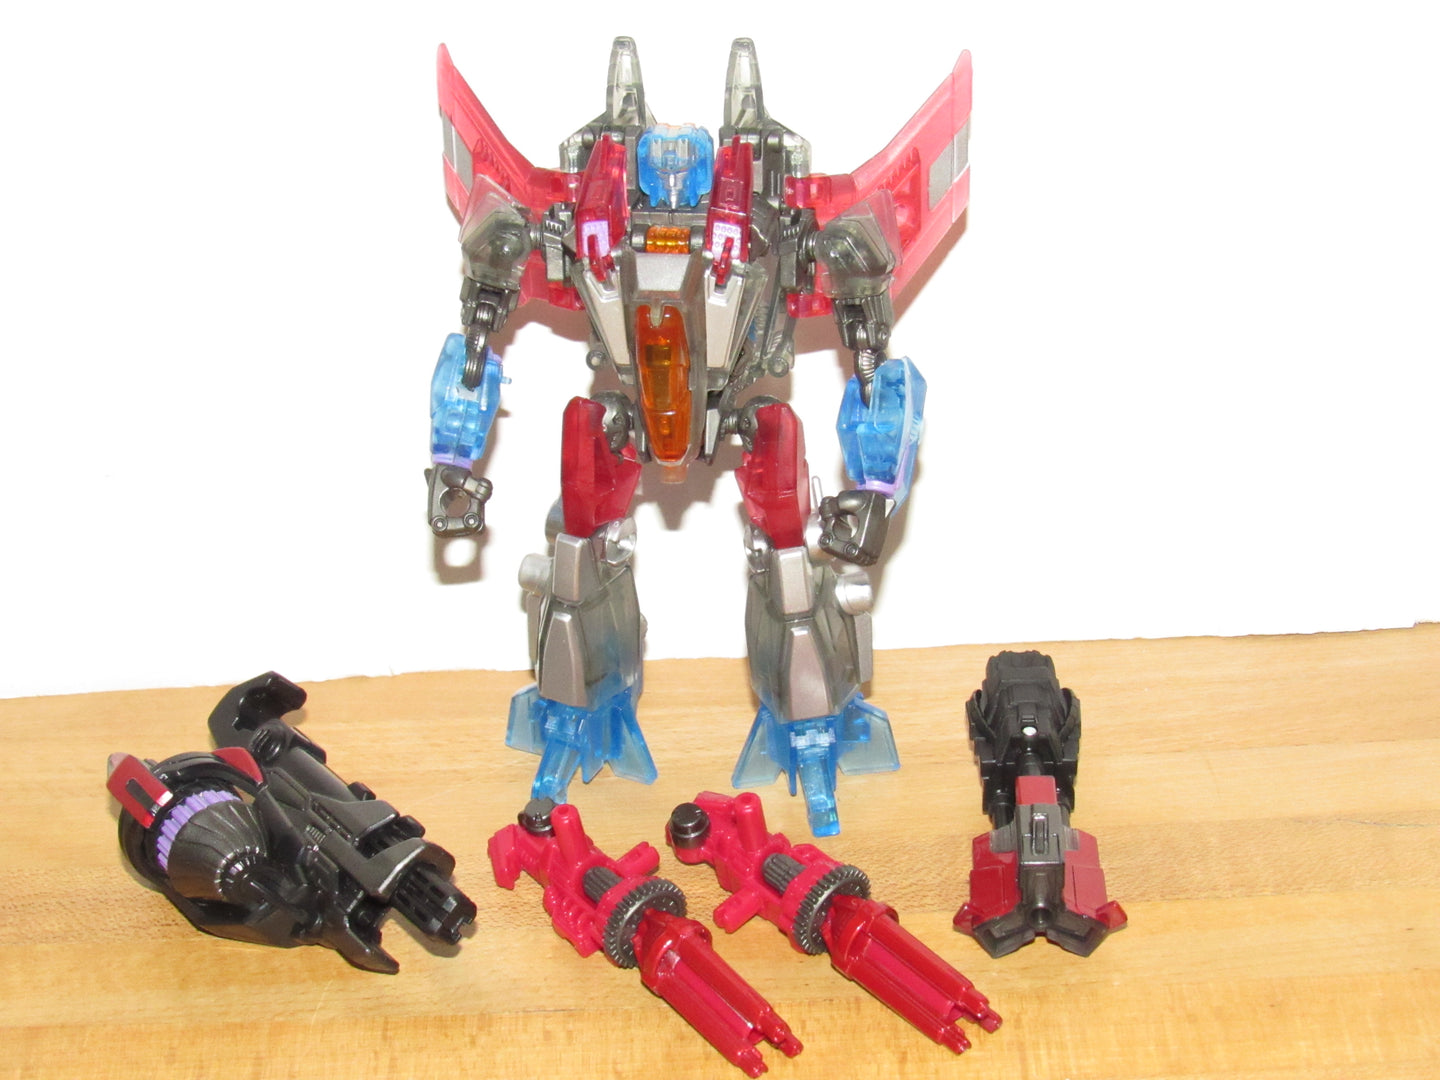 Takara Transformers Generations Fall of Cybertron Infiltrator Starscream Million Publishing Exc.